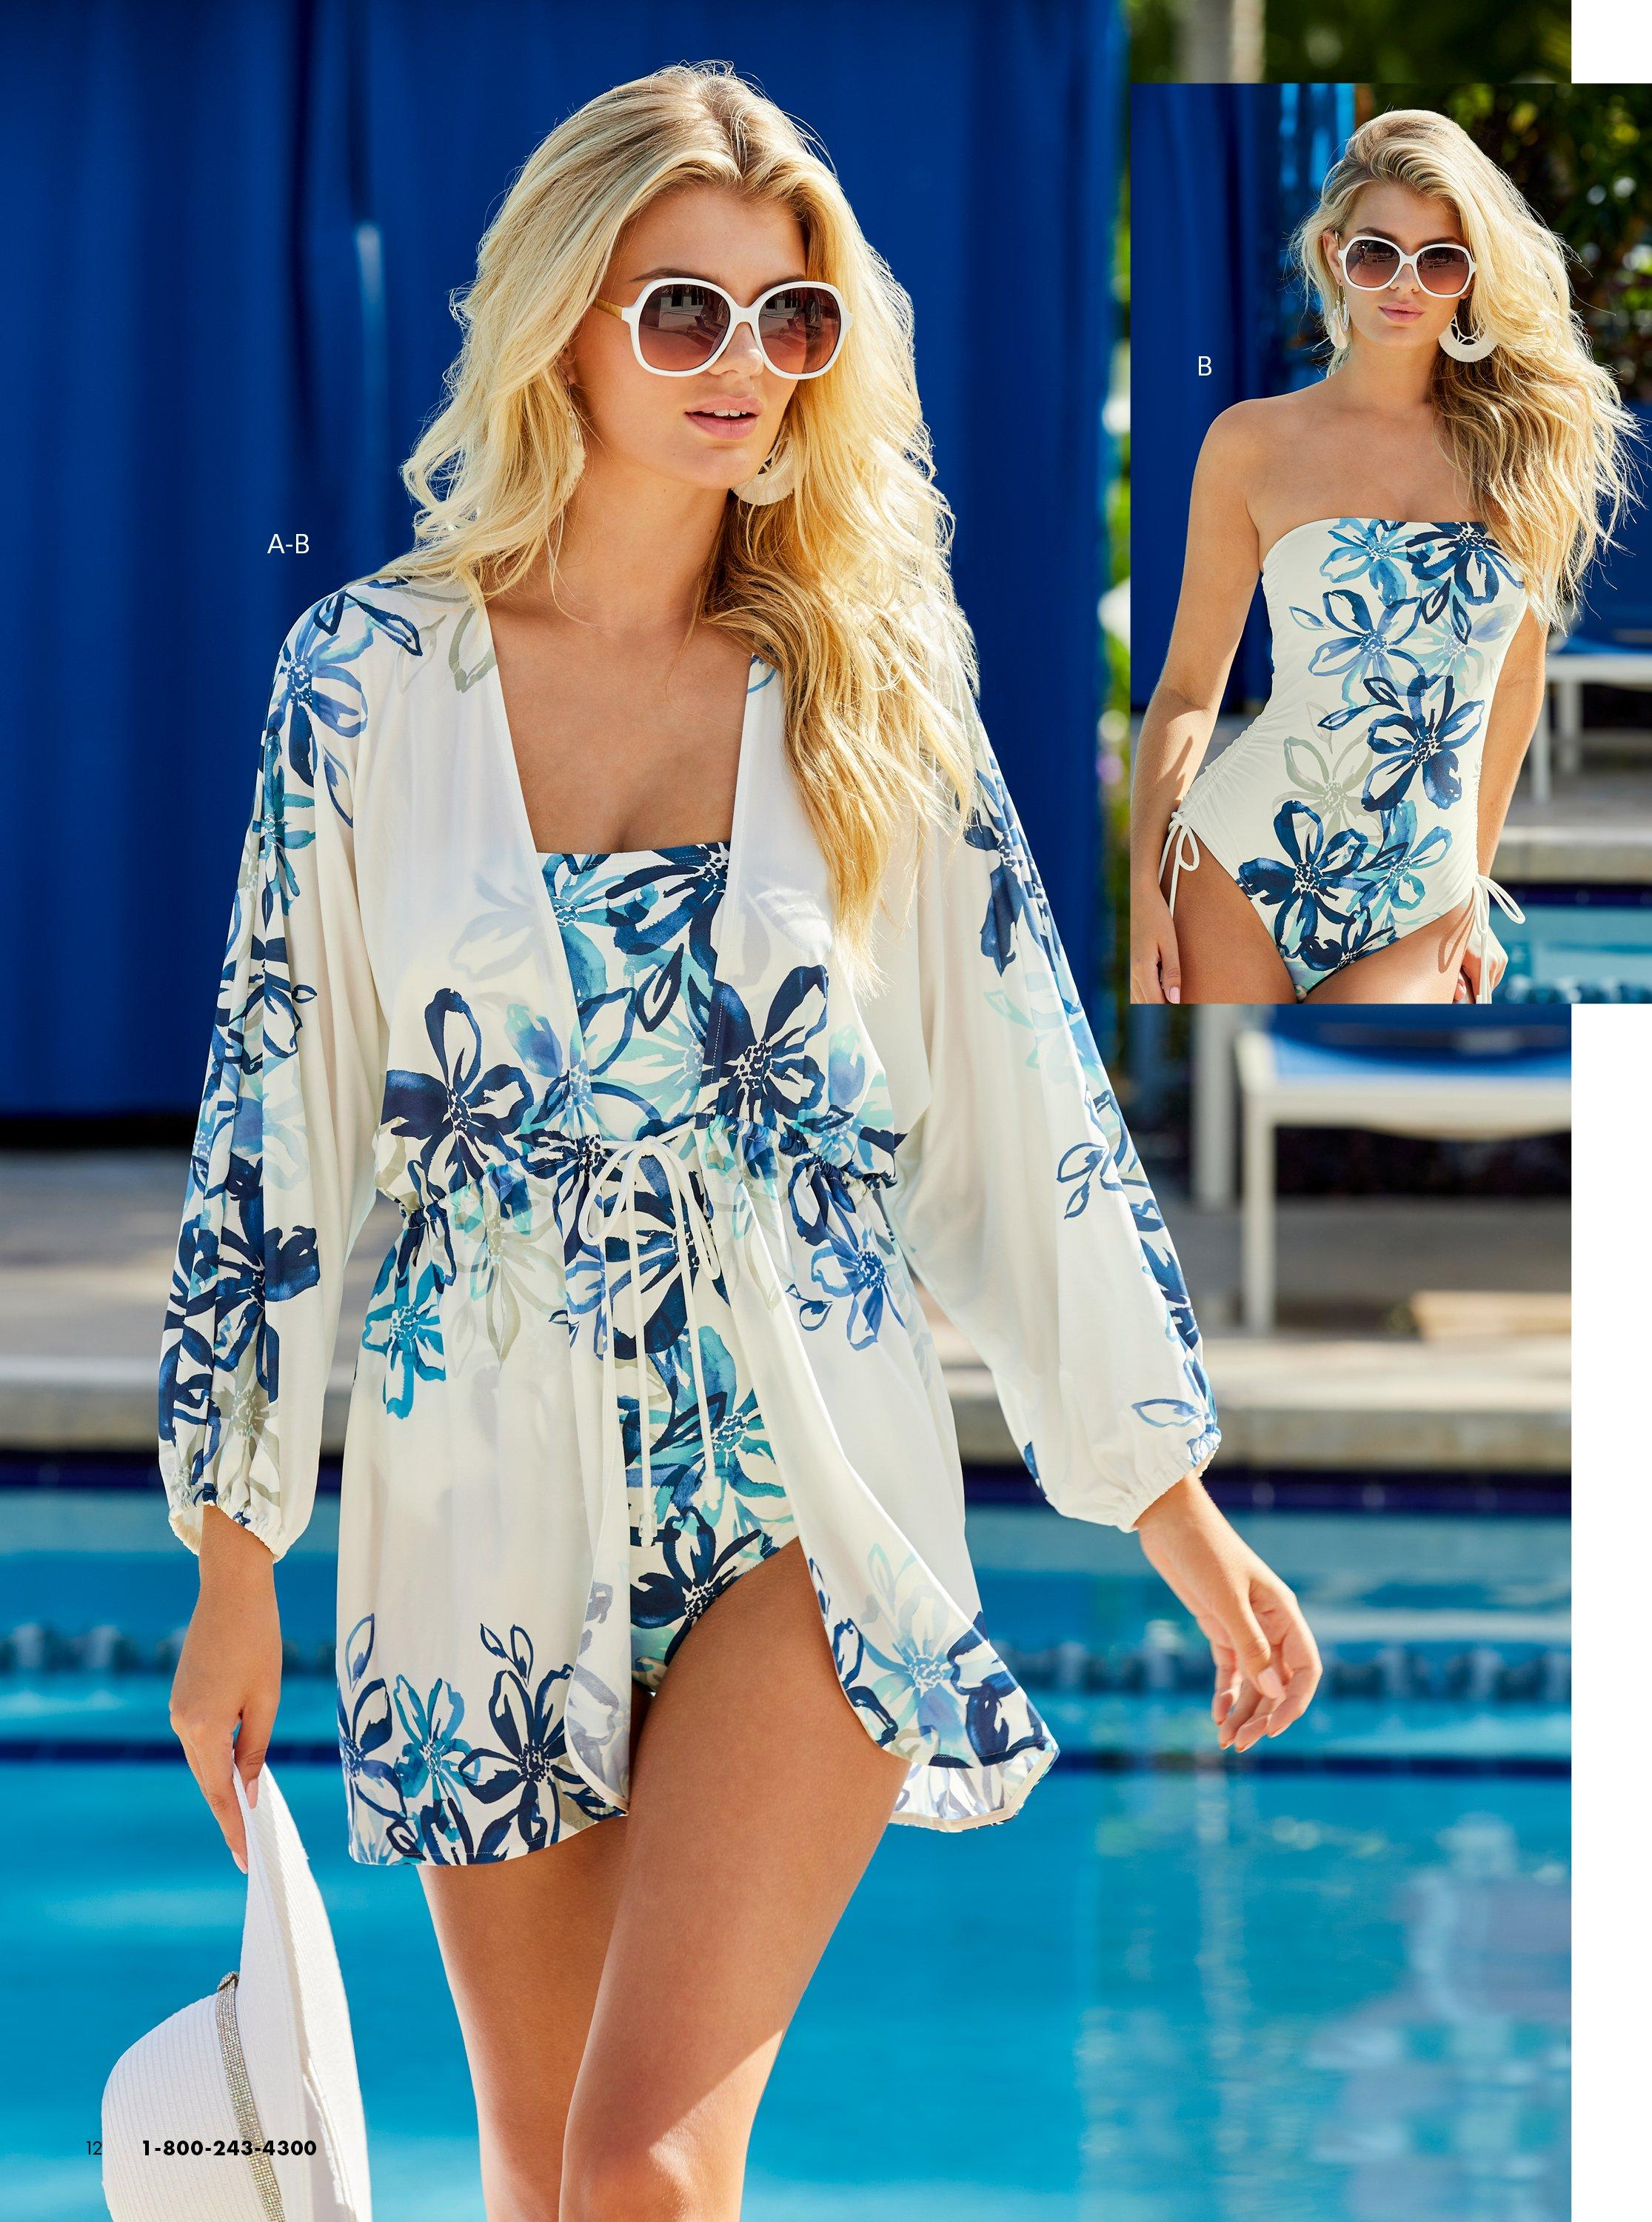 model wearing a blue and white floral printed bandeau one piece swimsuit and a matching cover up.